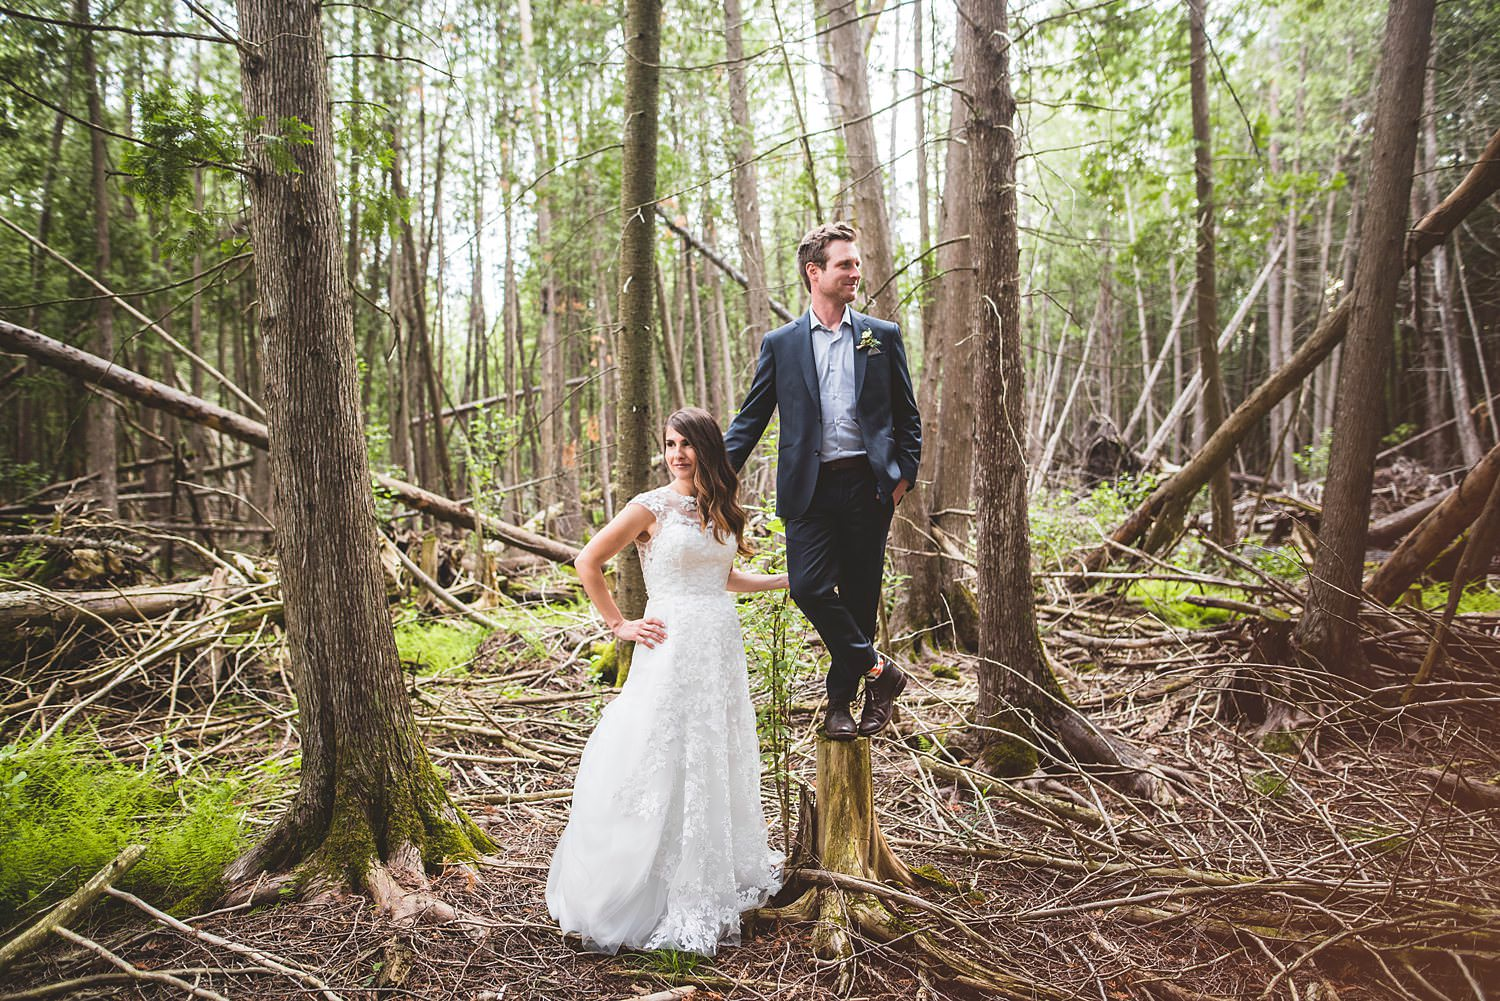 Double K Estate - Petoskey Traverse City - Michigan Wedding Photographer - 294.jpg